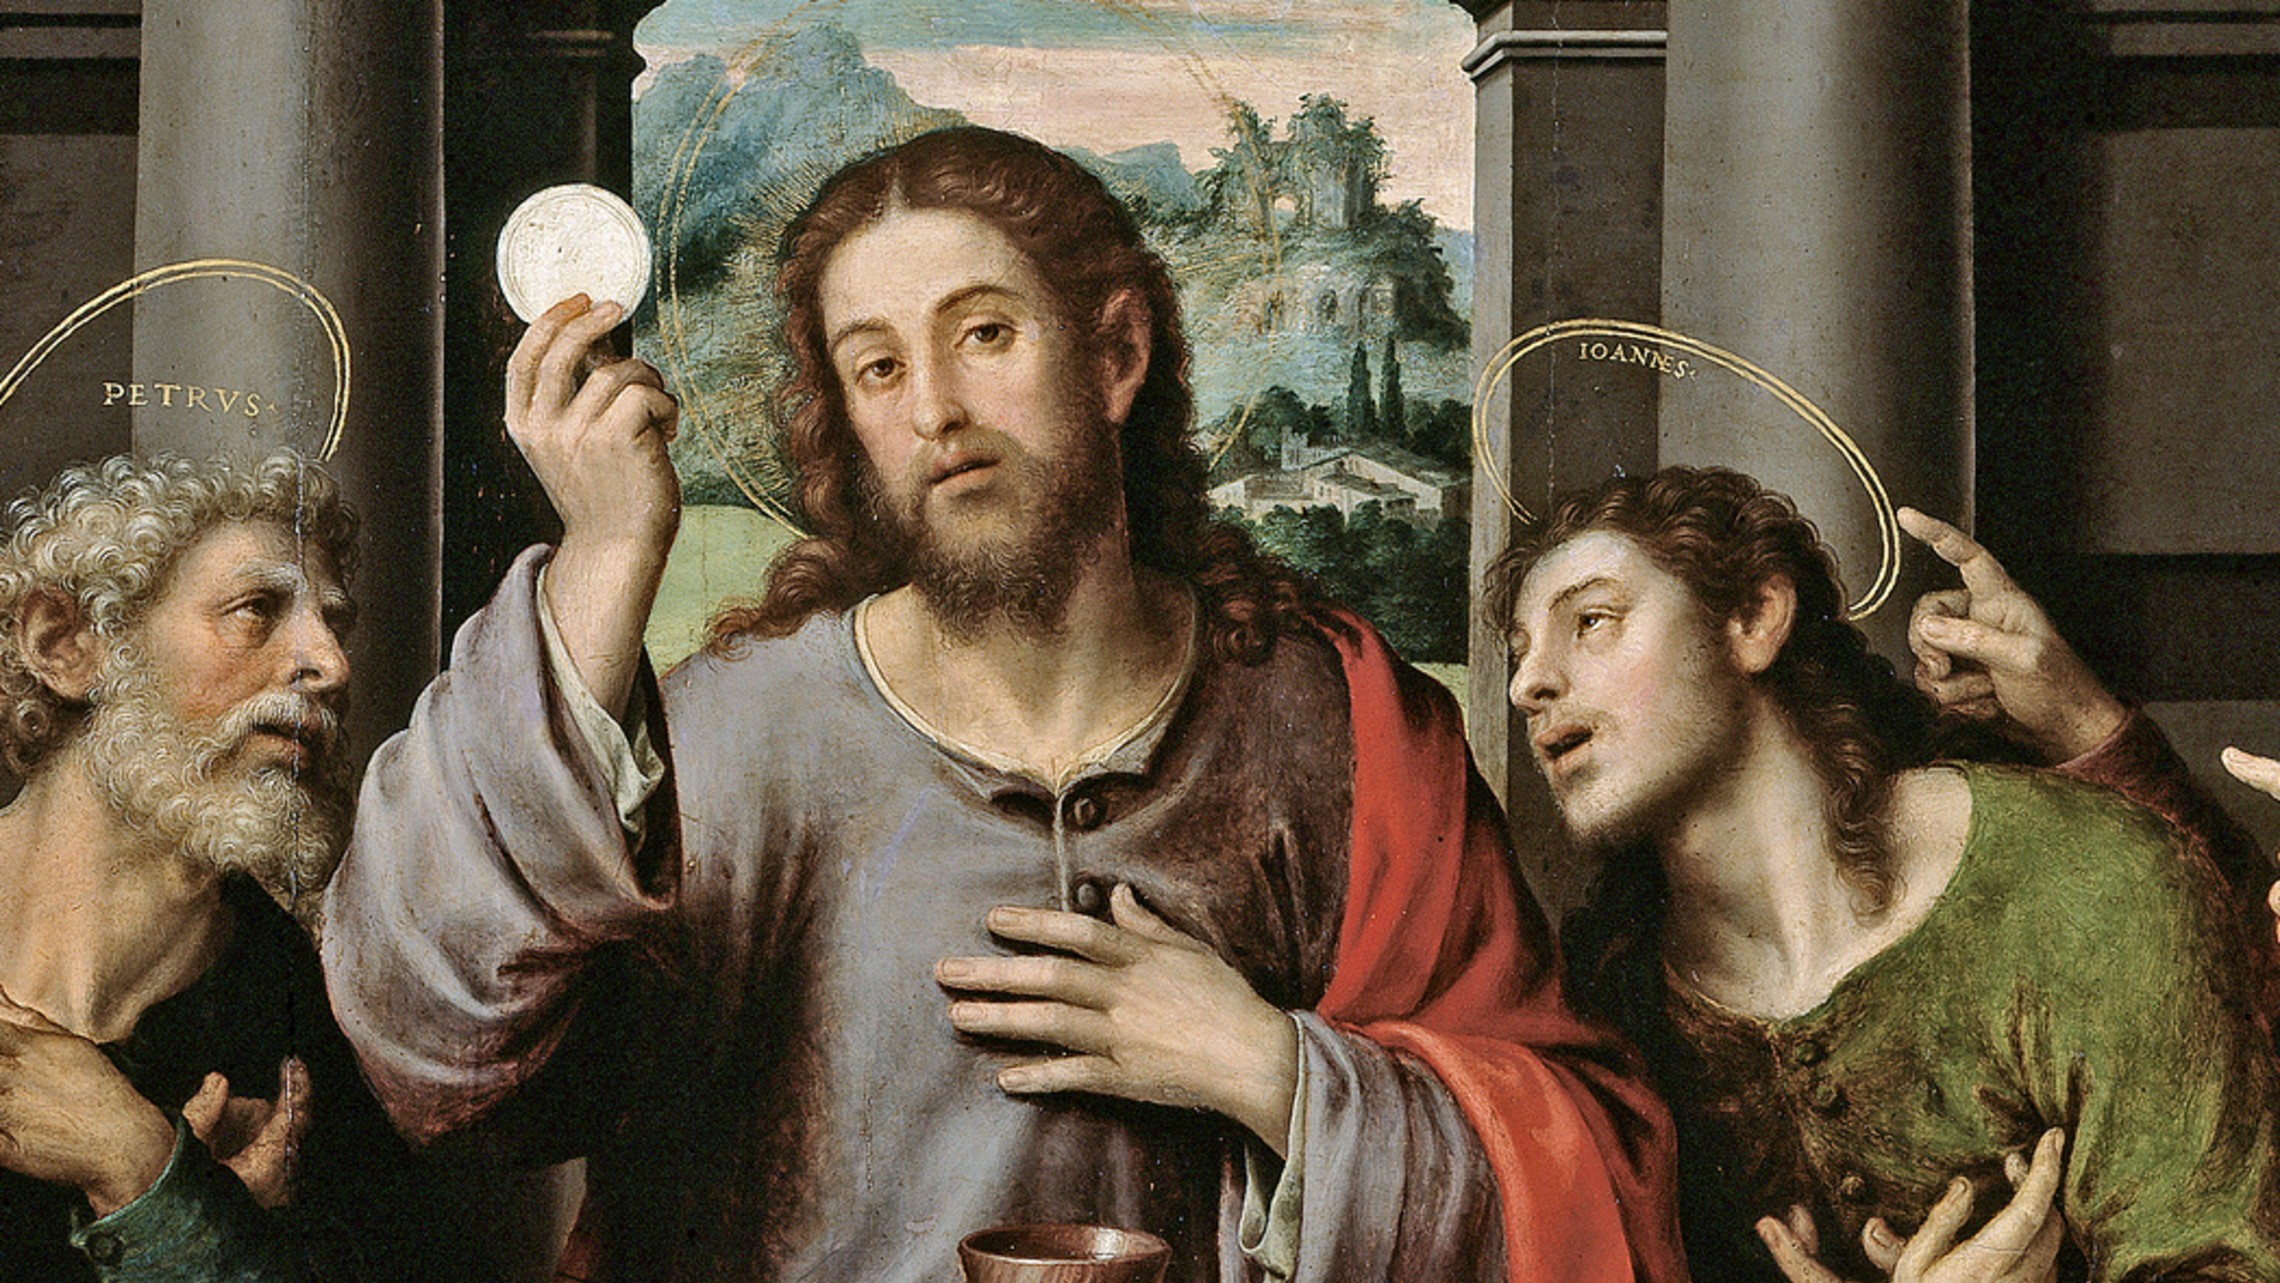 Jesus and the Eucharist